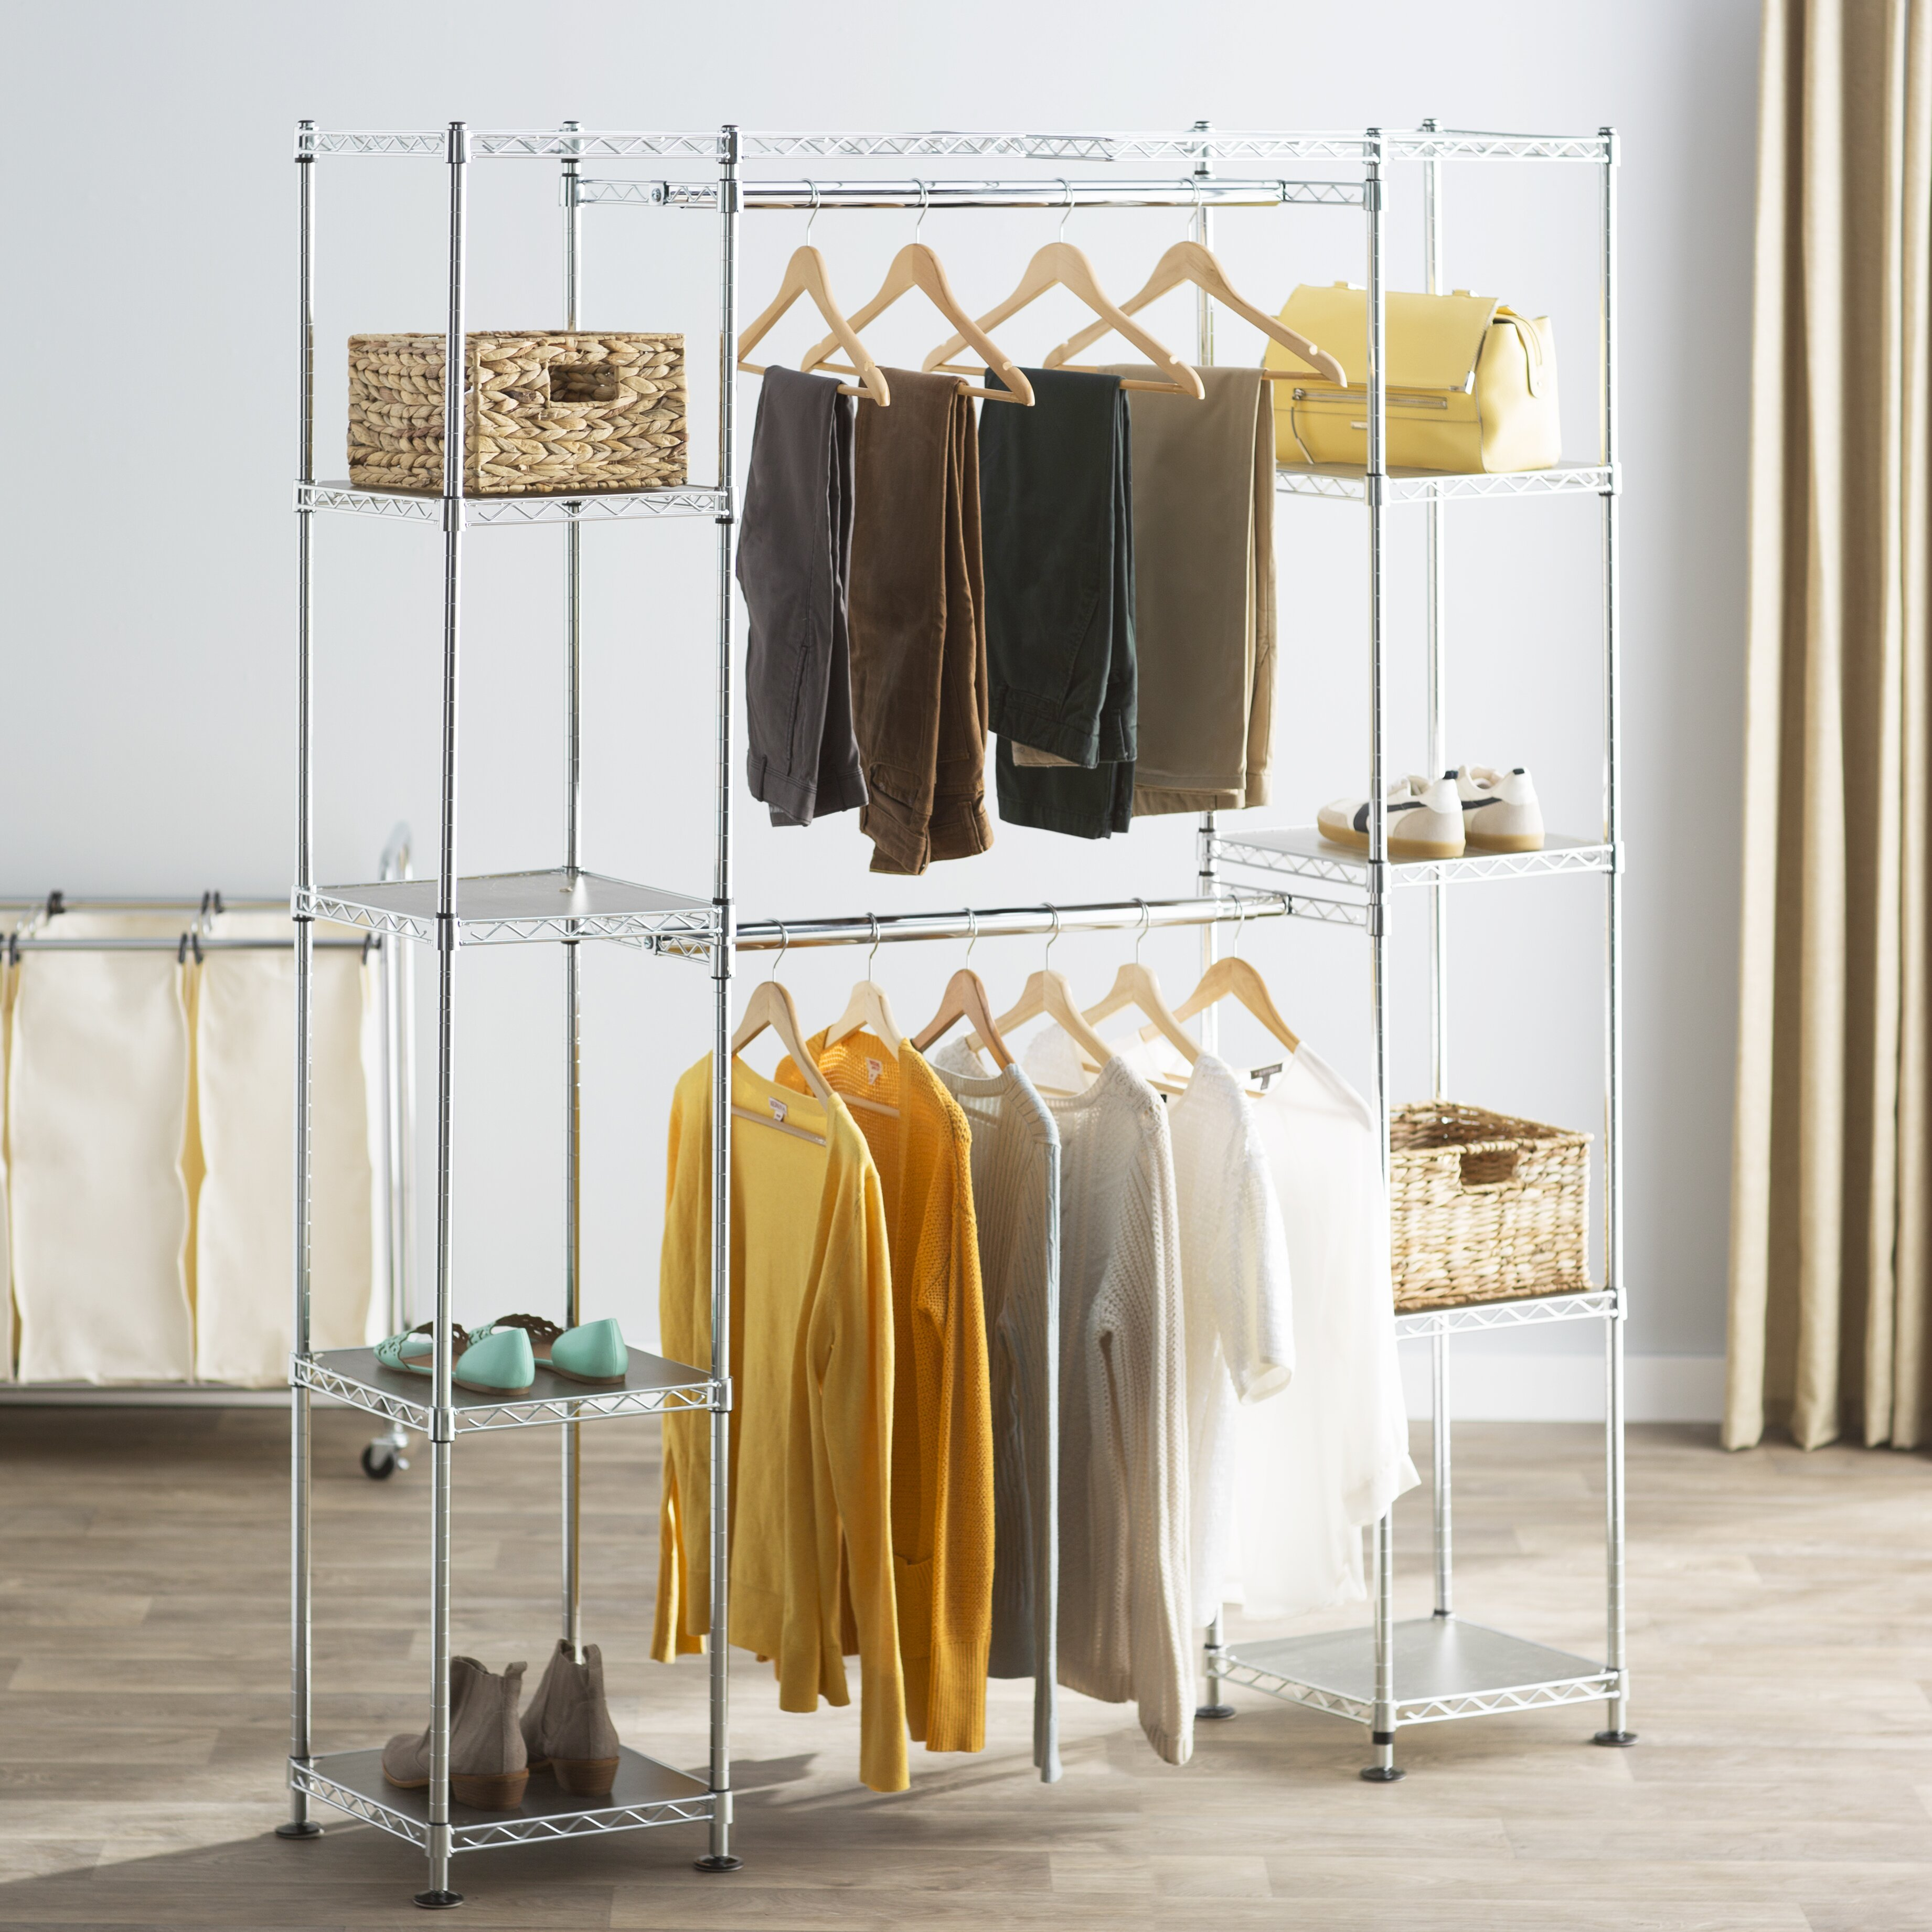 Wayfair Basics Wayfair Basics Wide Closet System amp Reviews  : 14 Deep Heavy Duty Steel Wire Expandable Closet Organizer WFBS1278 from www.wayfair.com size 3683 x 3683 jpeg 1897kB